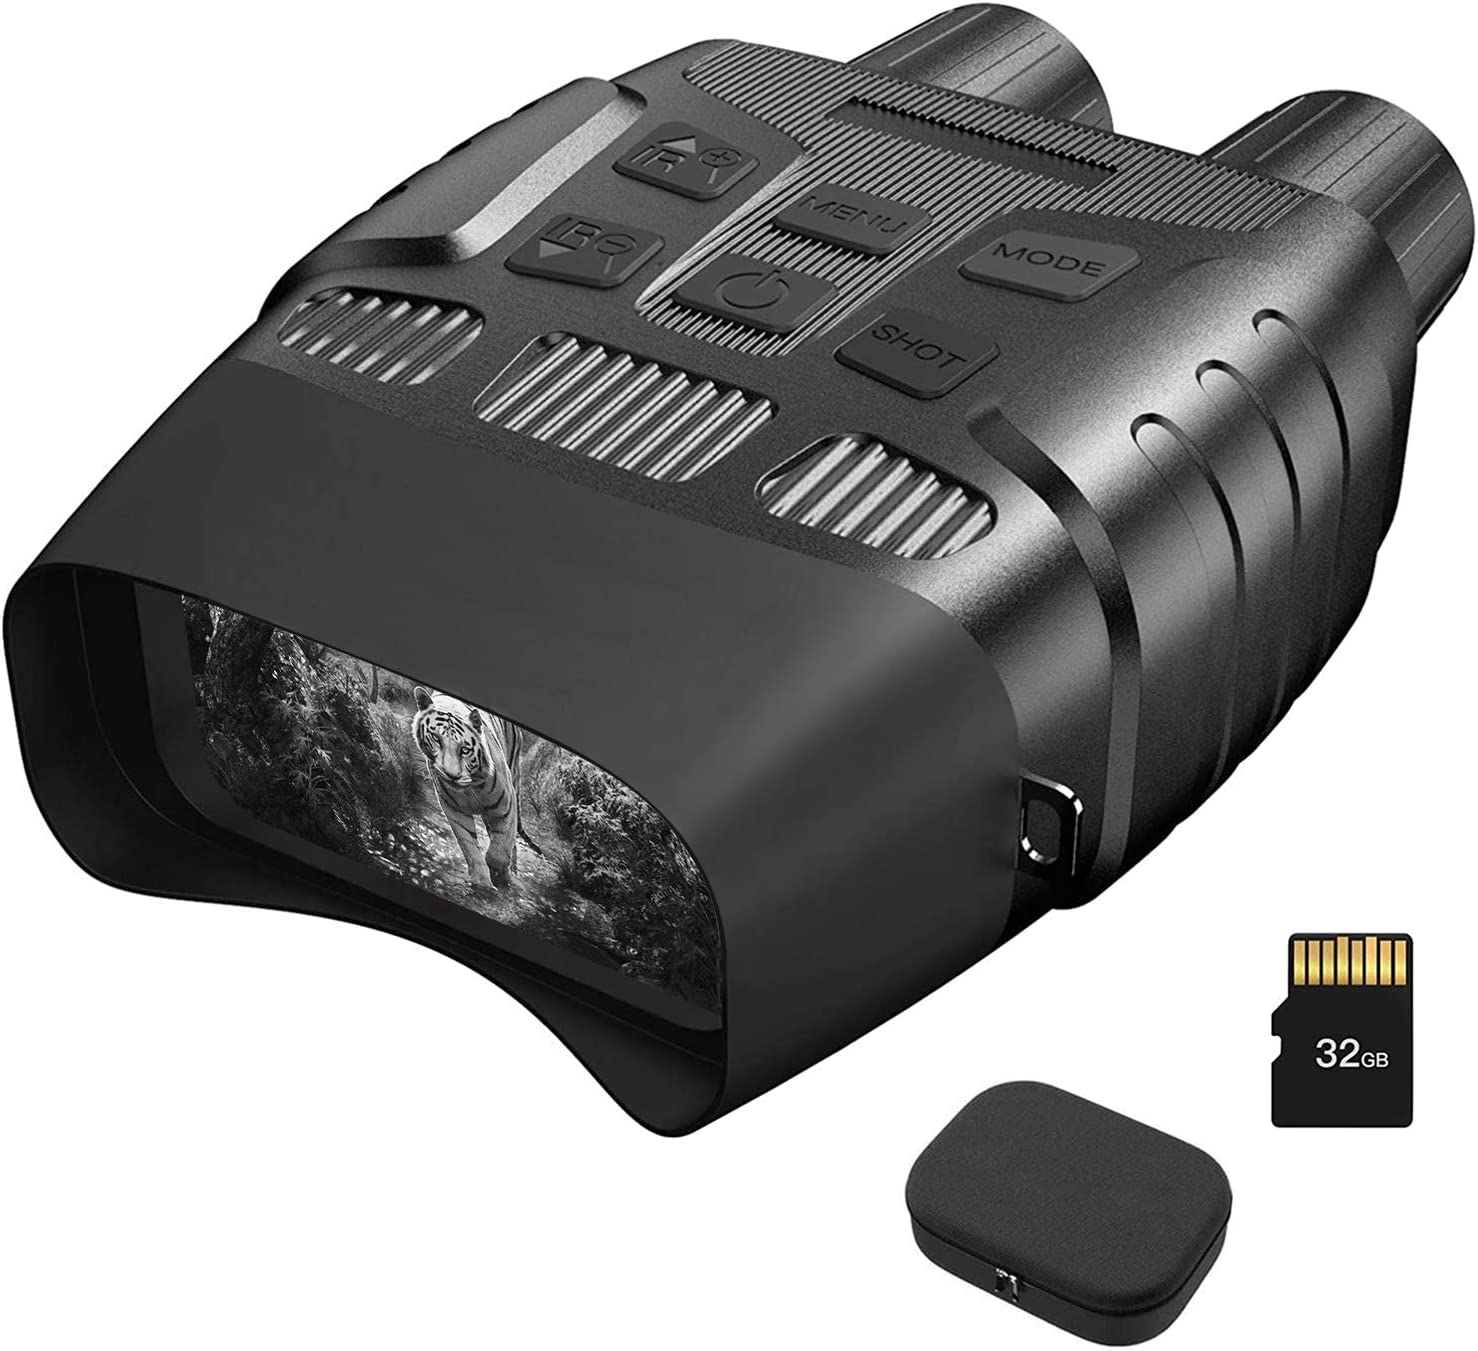 HEXEUM Night Vision Goggles Night Vision Binoculars for Adults - Digital Infrared Binoculars can Save Photo and Video with 32GB Memory Card